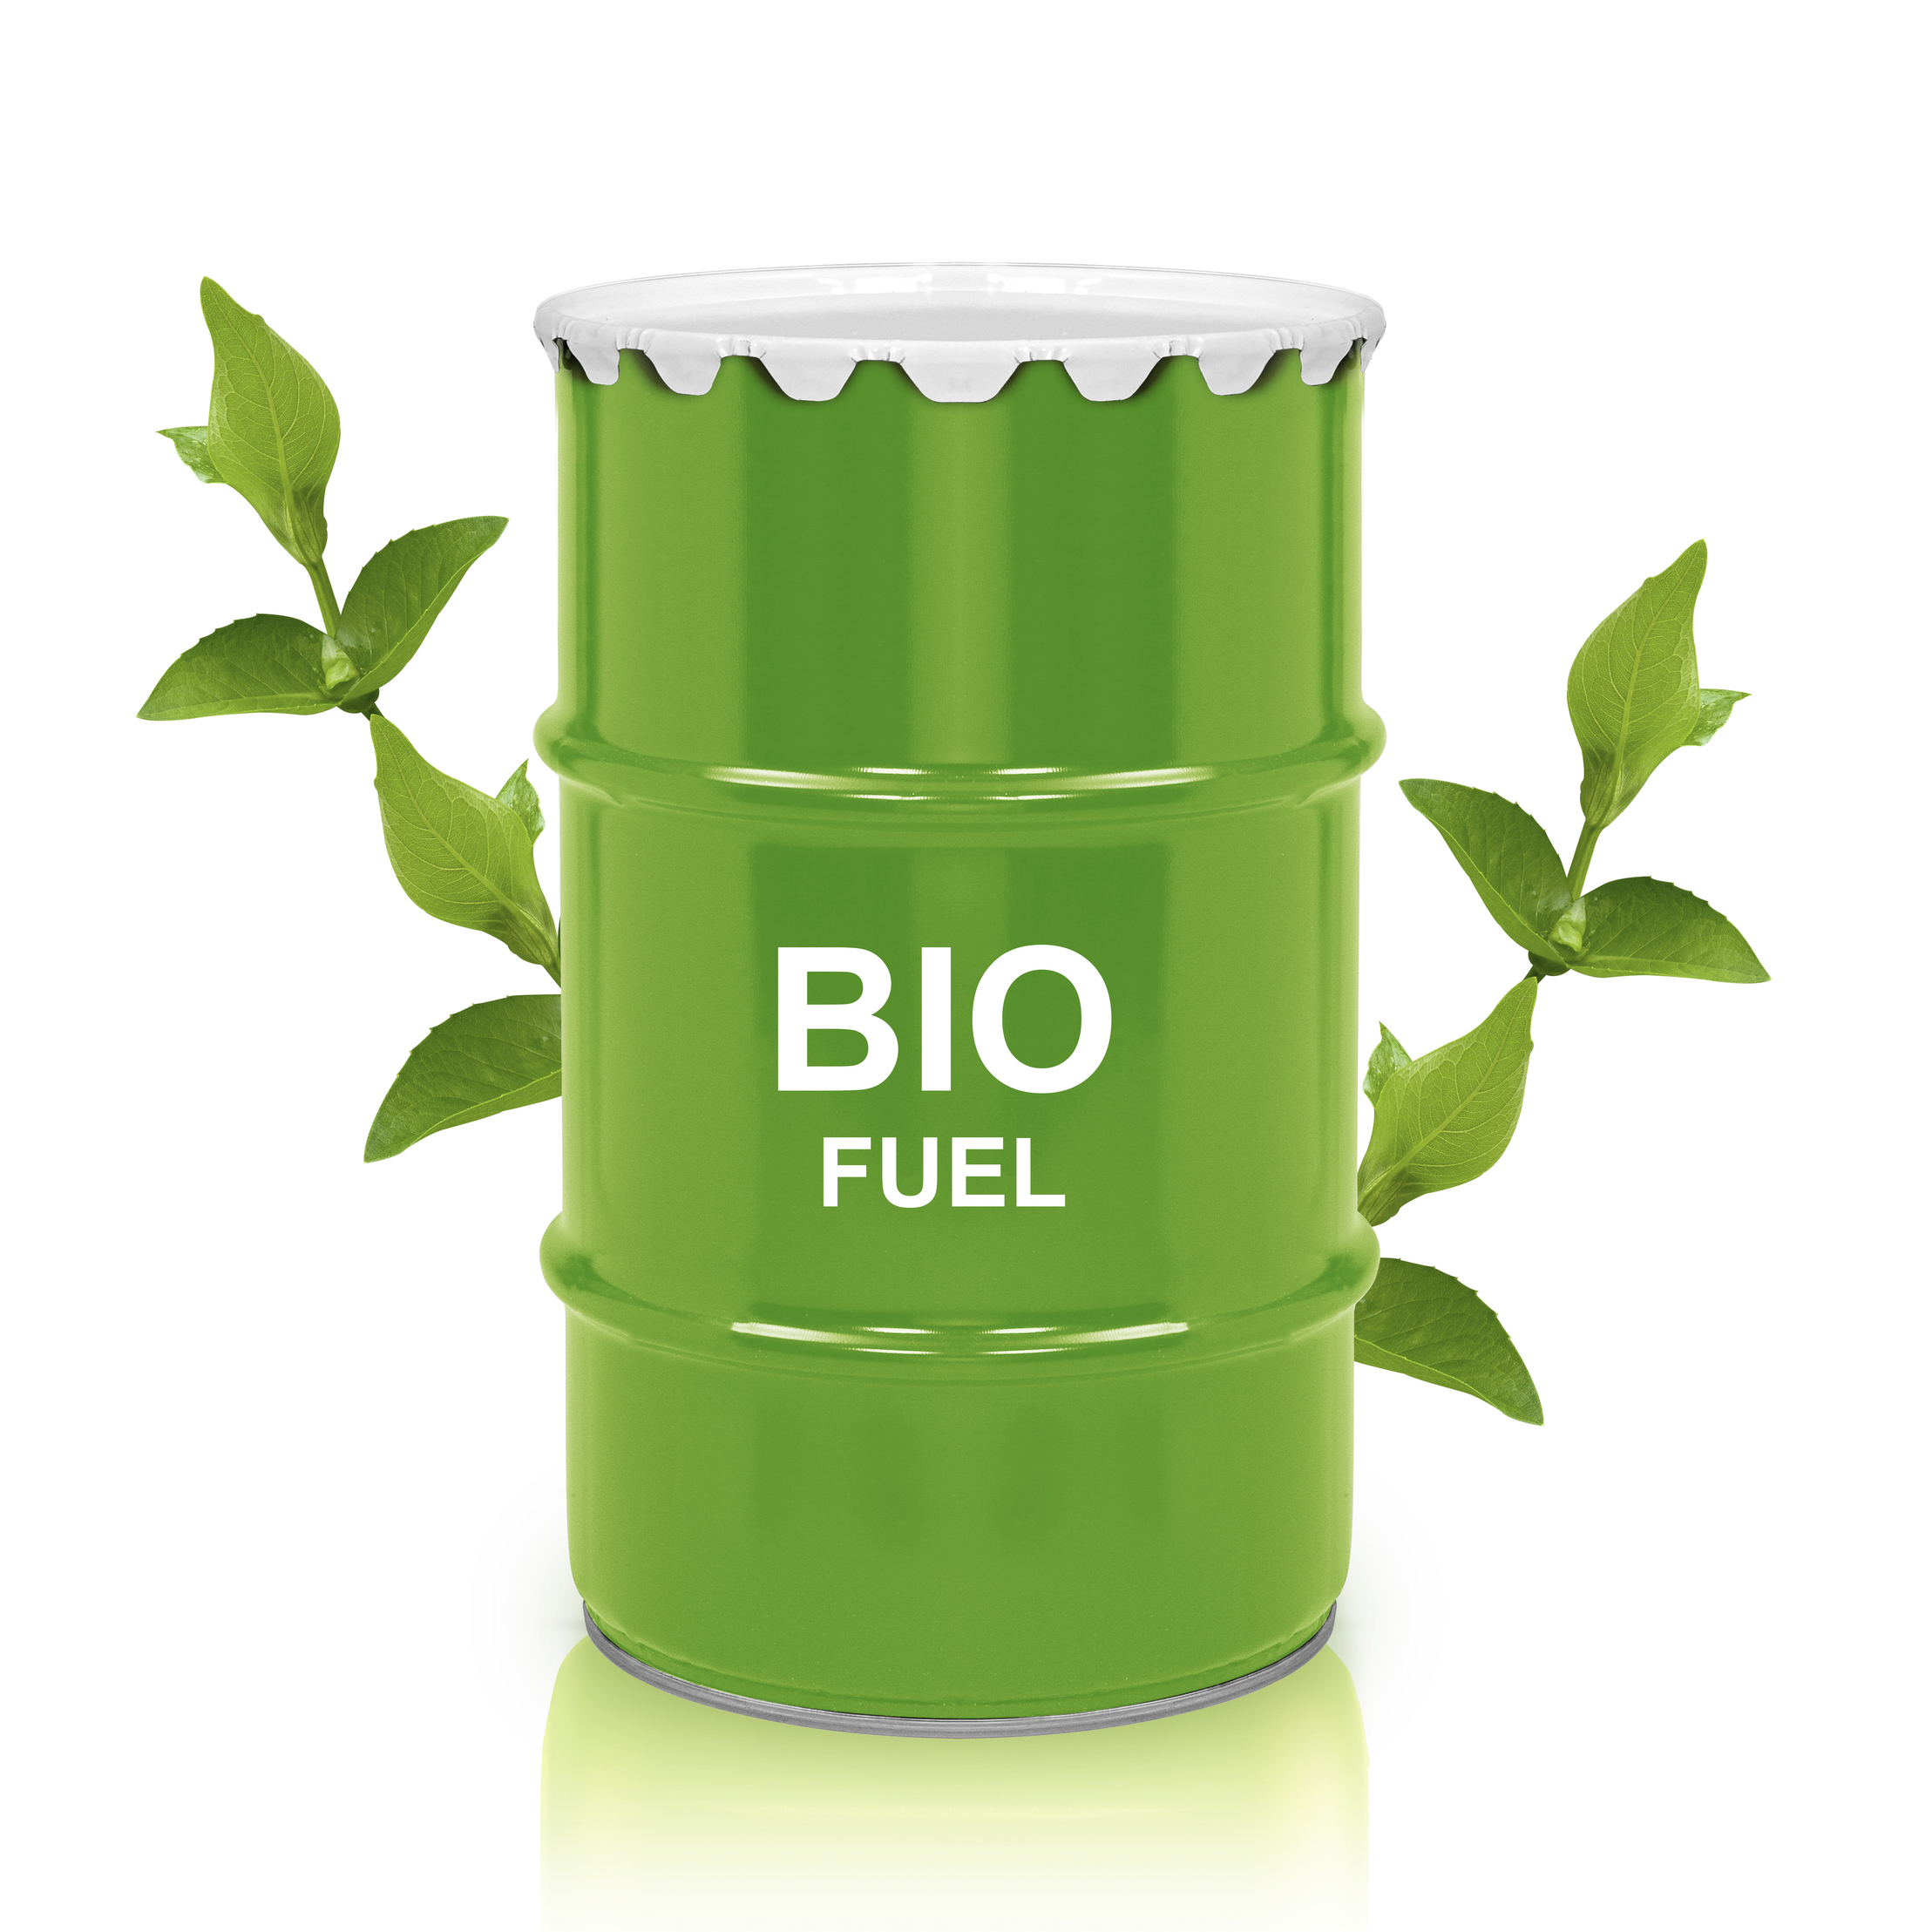 Sustainable Biofuels Innovation Challenge Launched